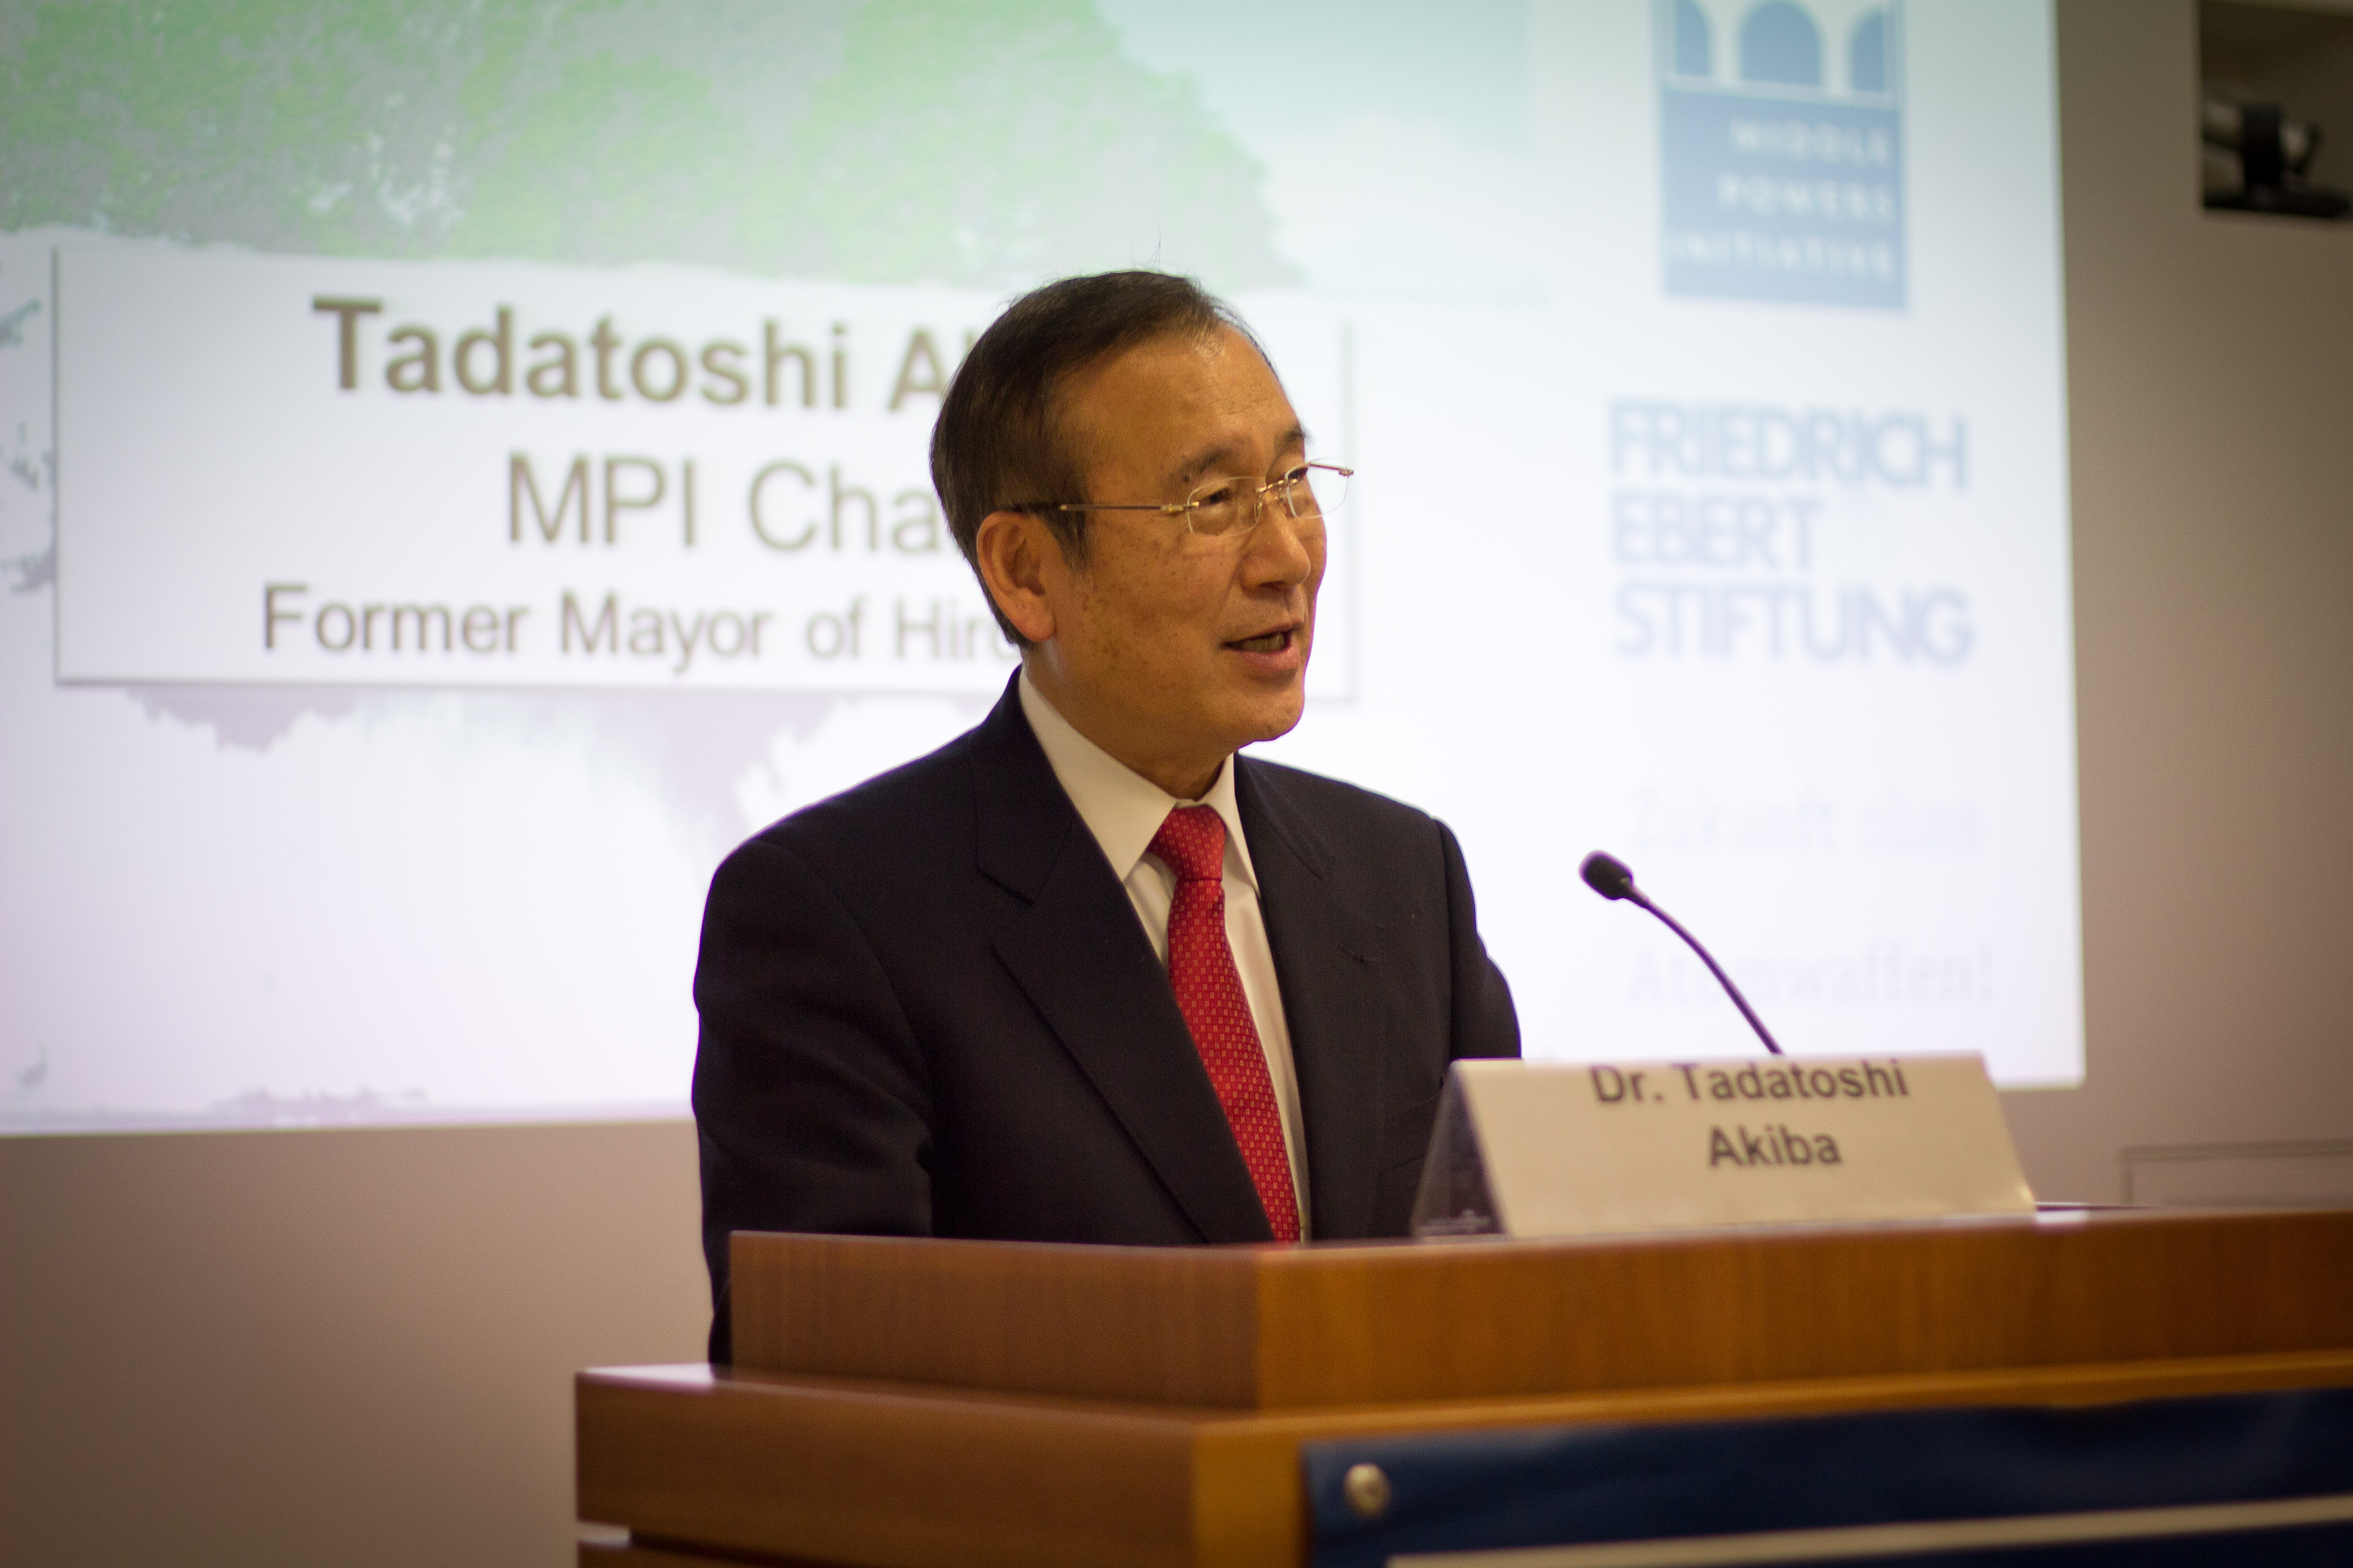 Tad Akiba, chair of the MPI, speaking at the public session